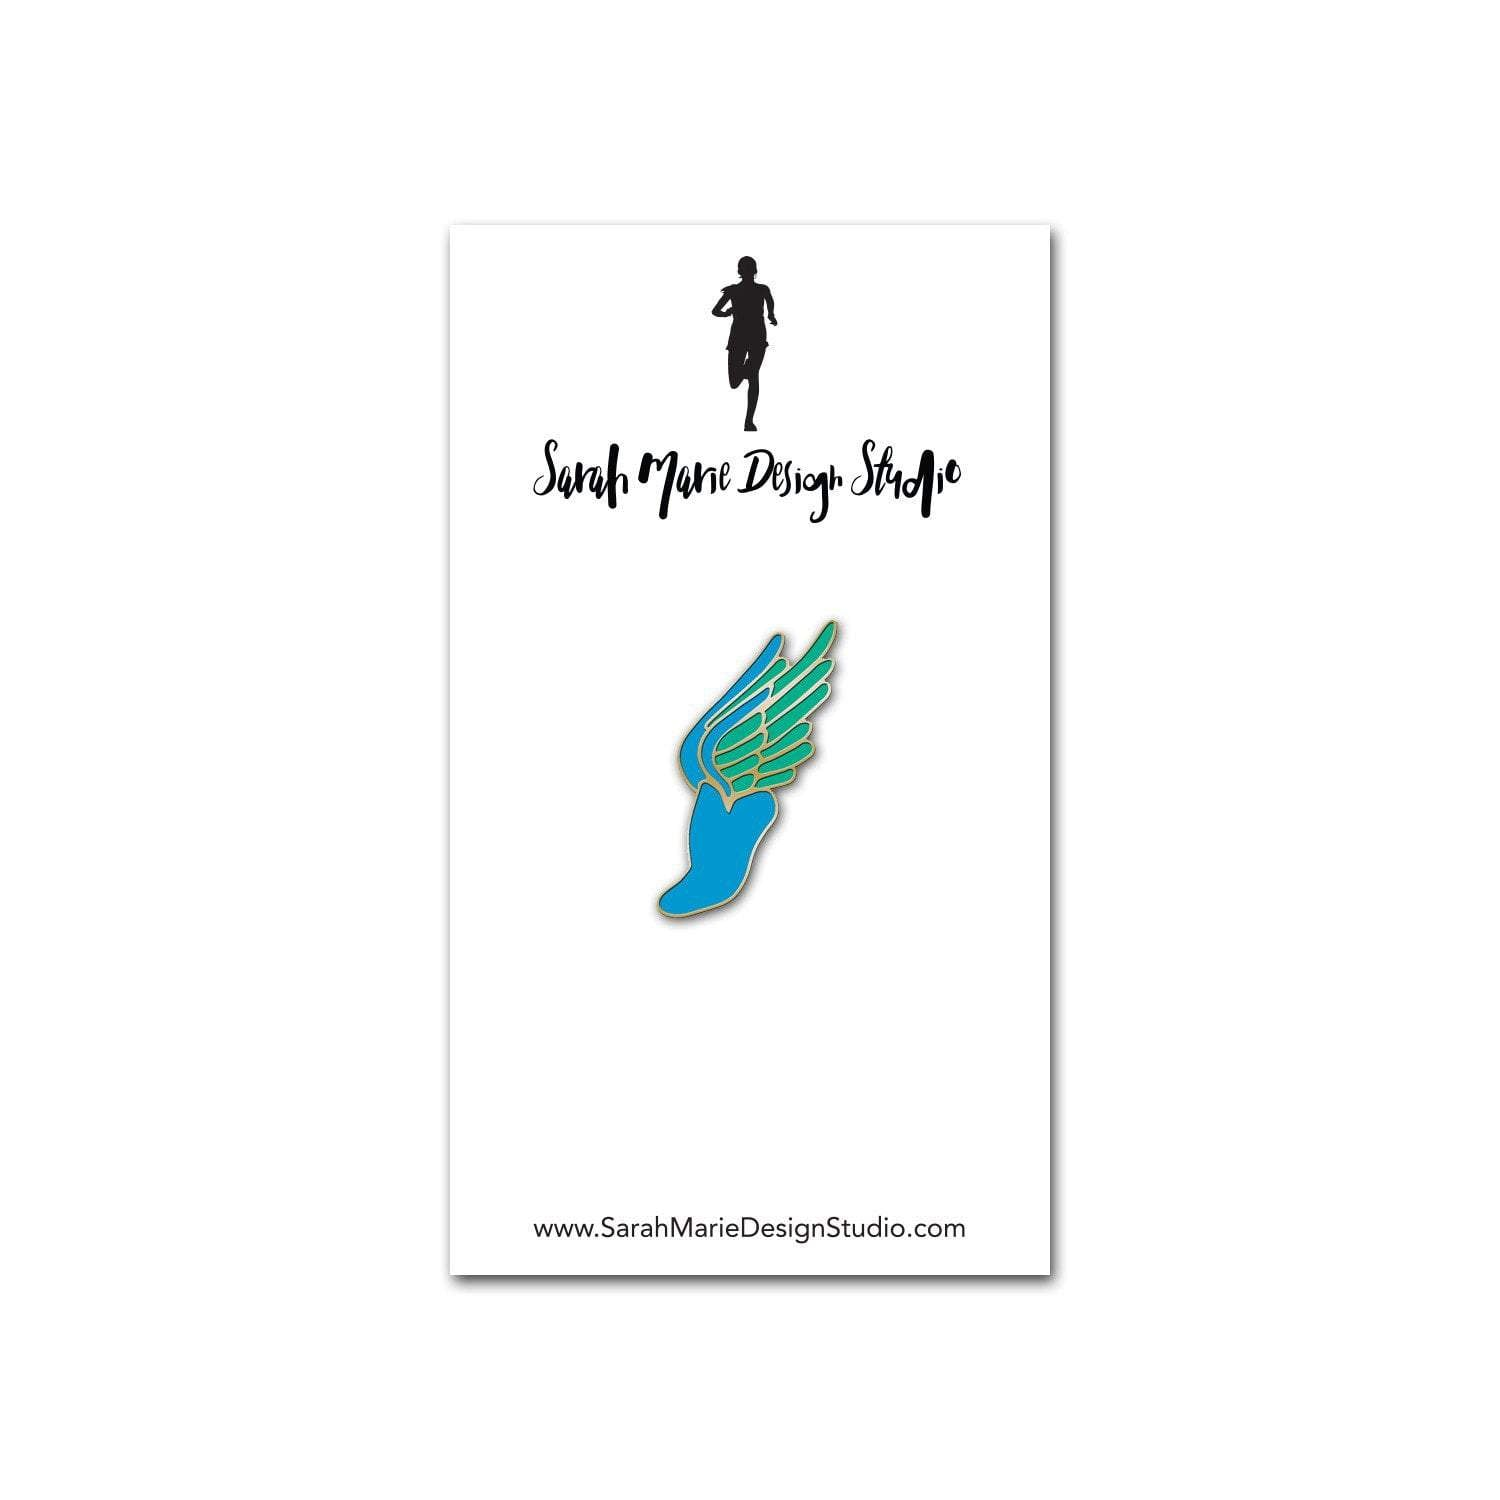 Sarah Marie Design Studio Pins Blue Winged Foot Pin